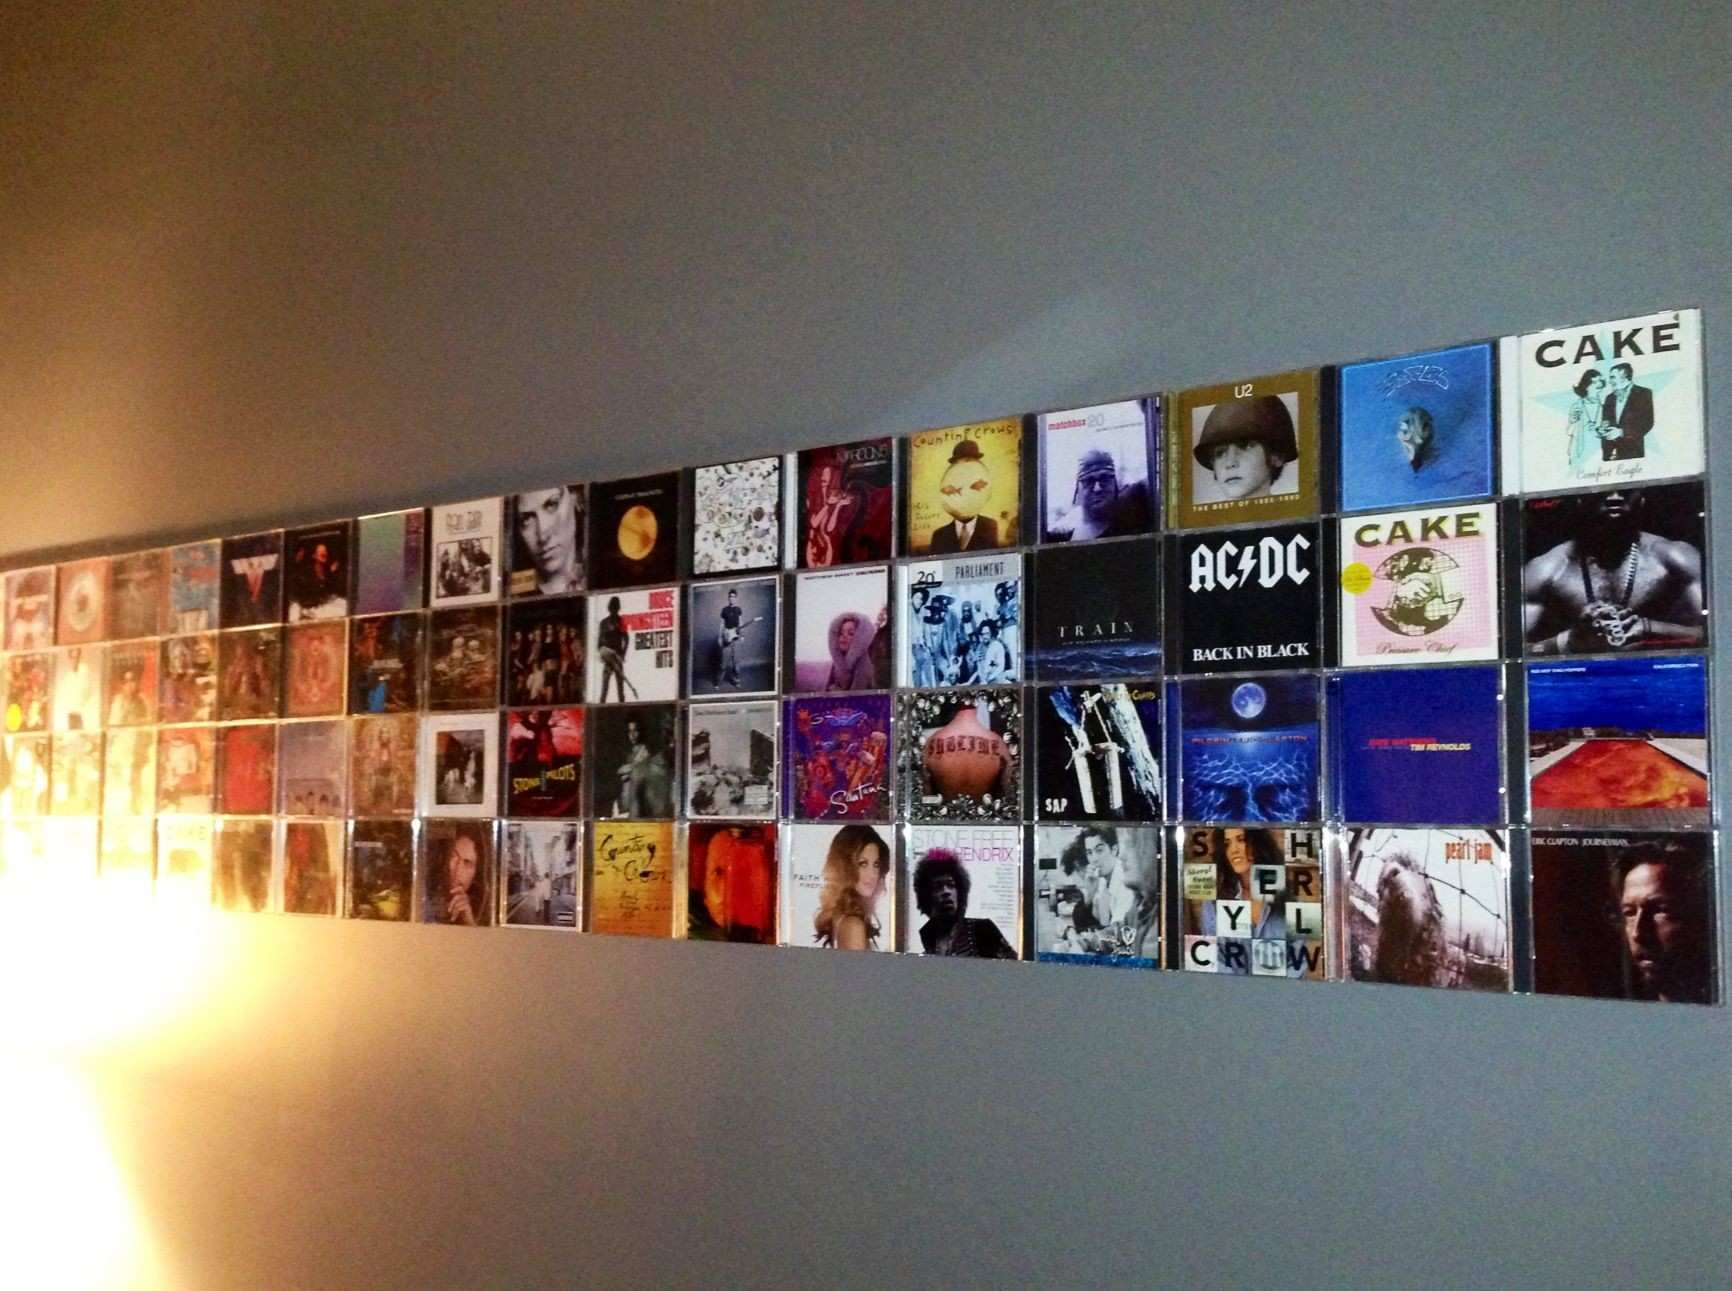 Cool Wall Art for Guys Fresh Cd Wall Art Tach the Cases with 3m Adhesive Strips You Could